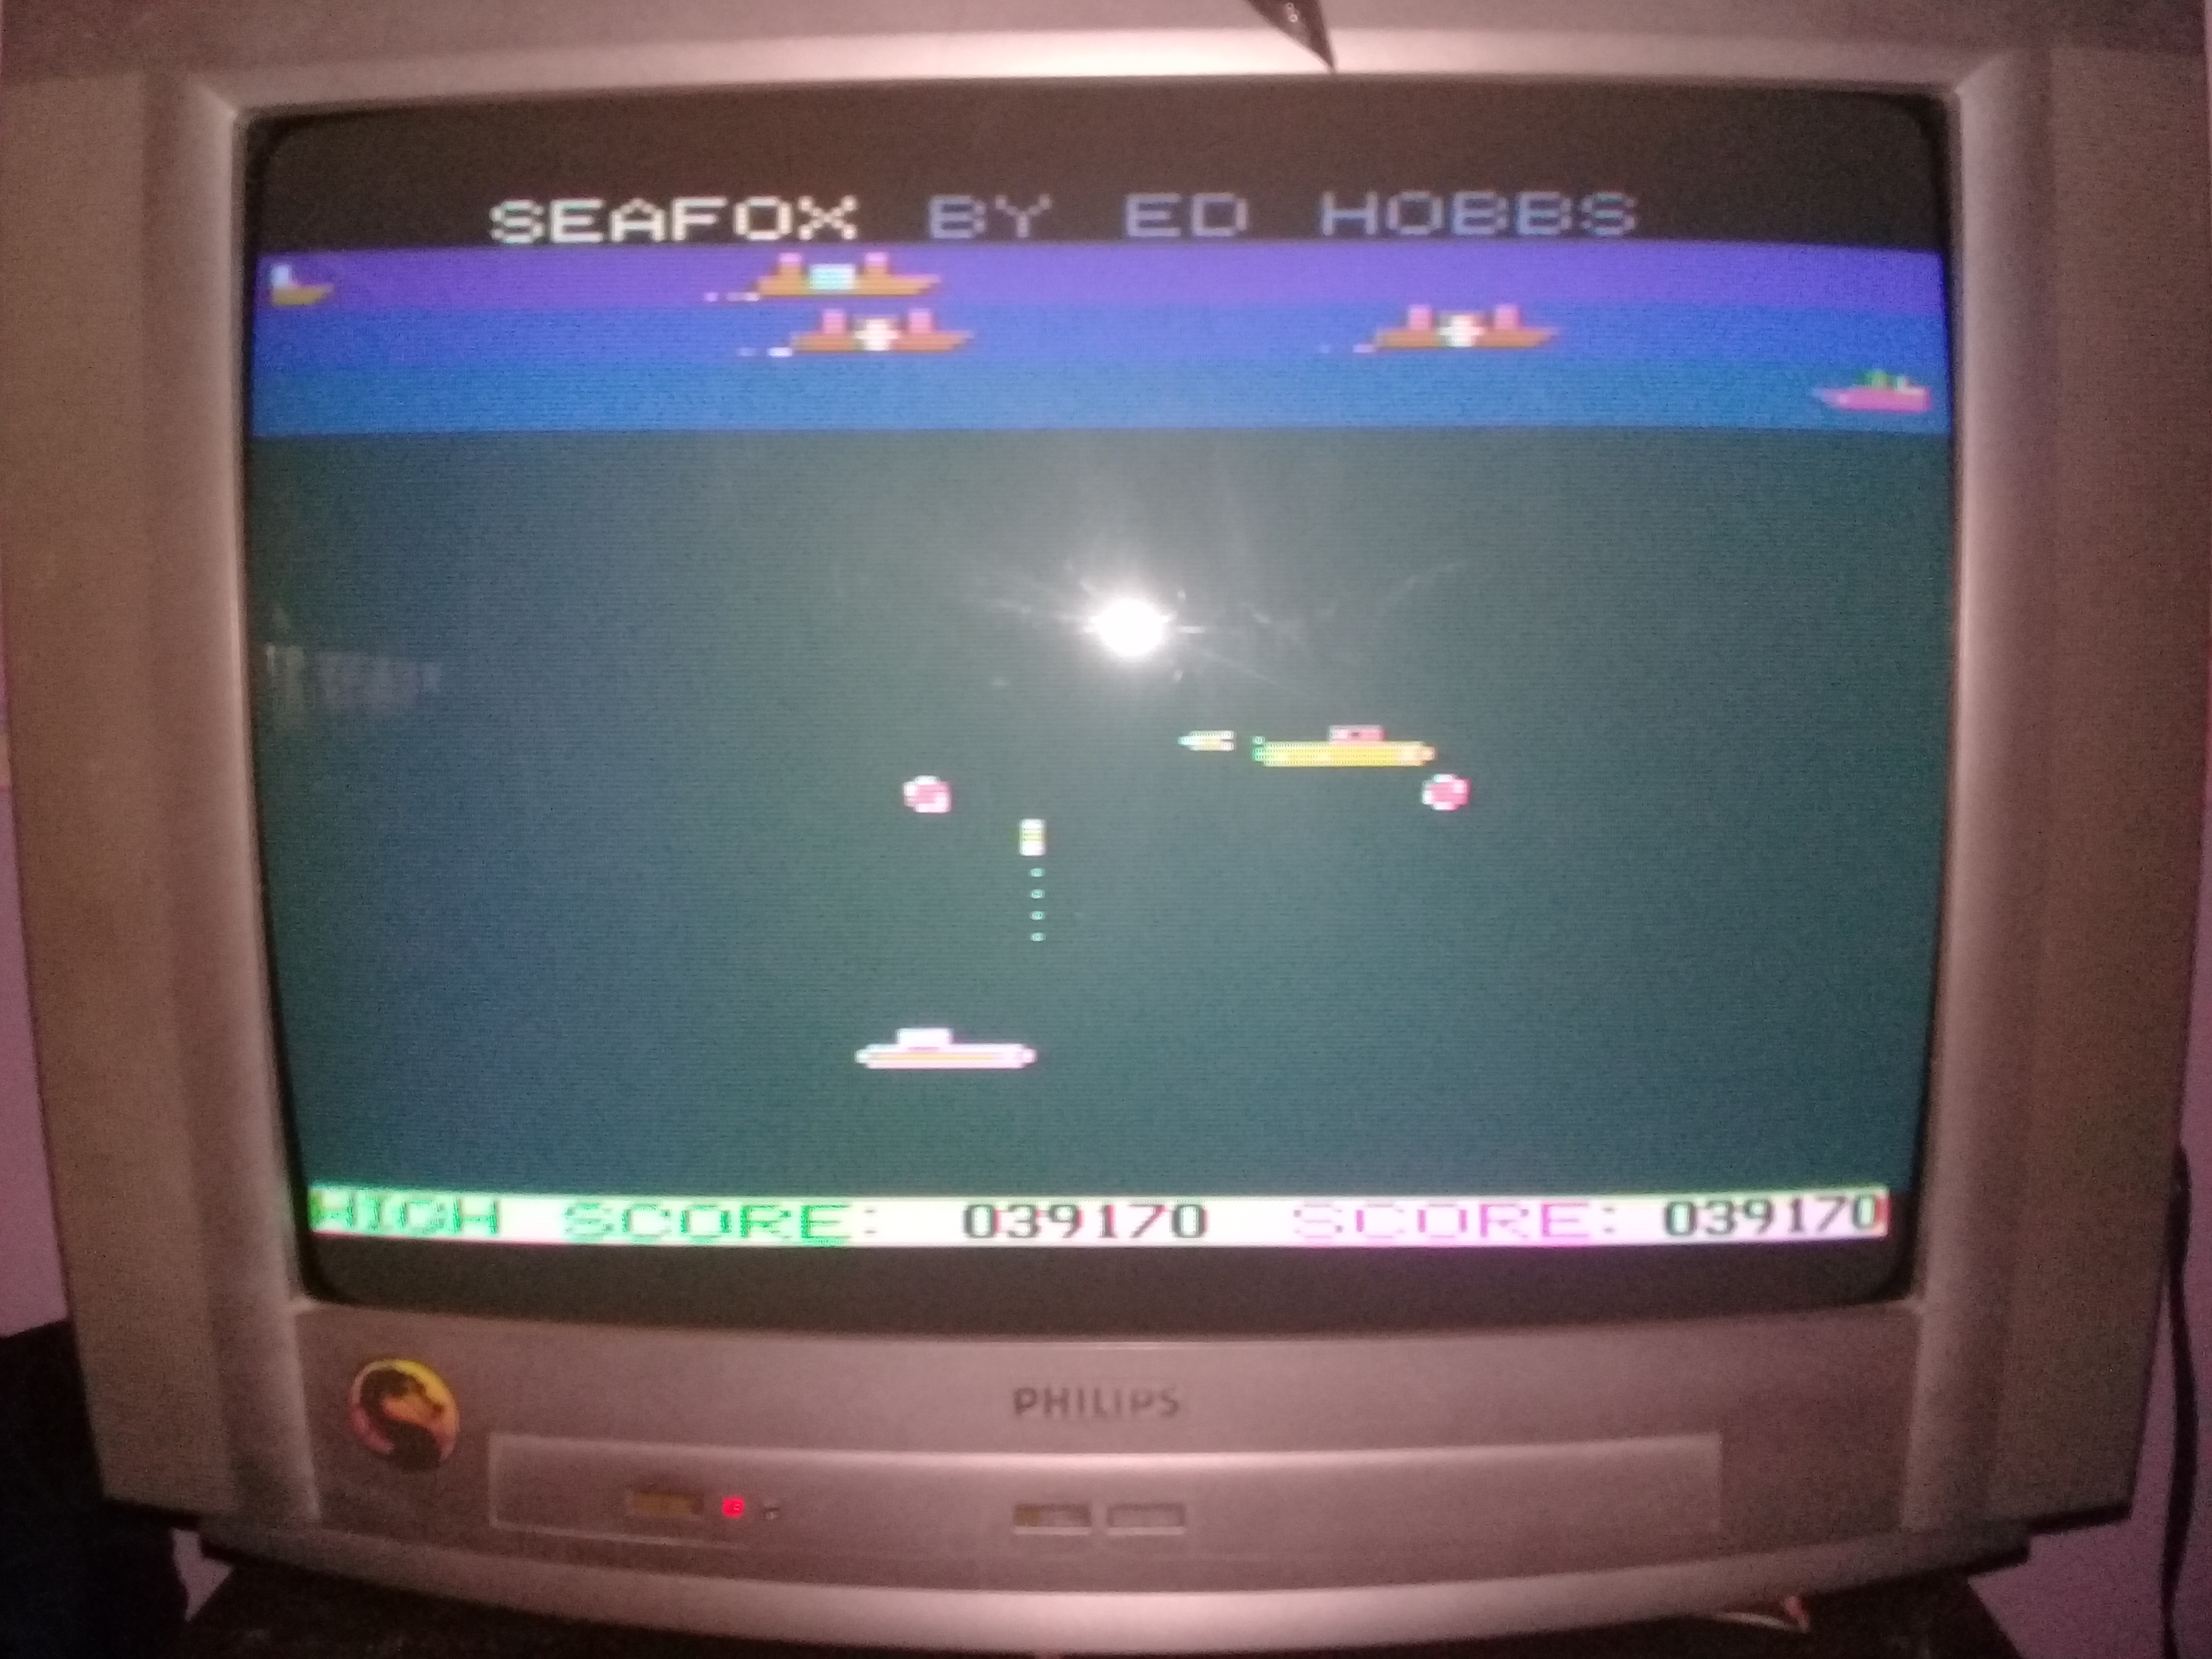 omargeddon: Seafox (Atari 400/800/XL/XE) 39,170 points on 2020-03-30 10:27:31